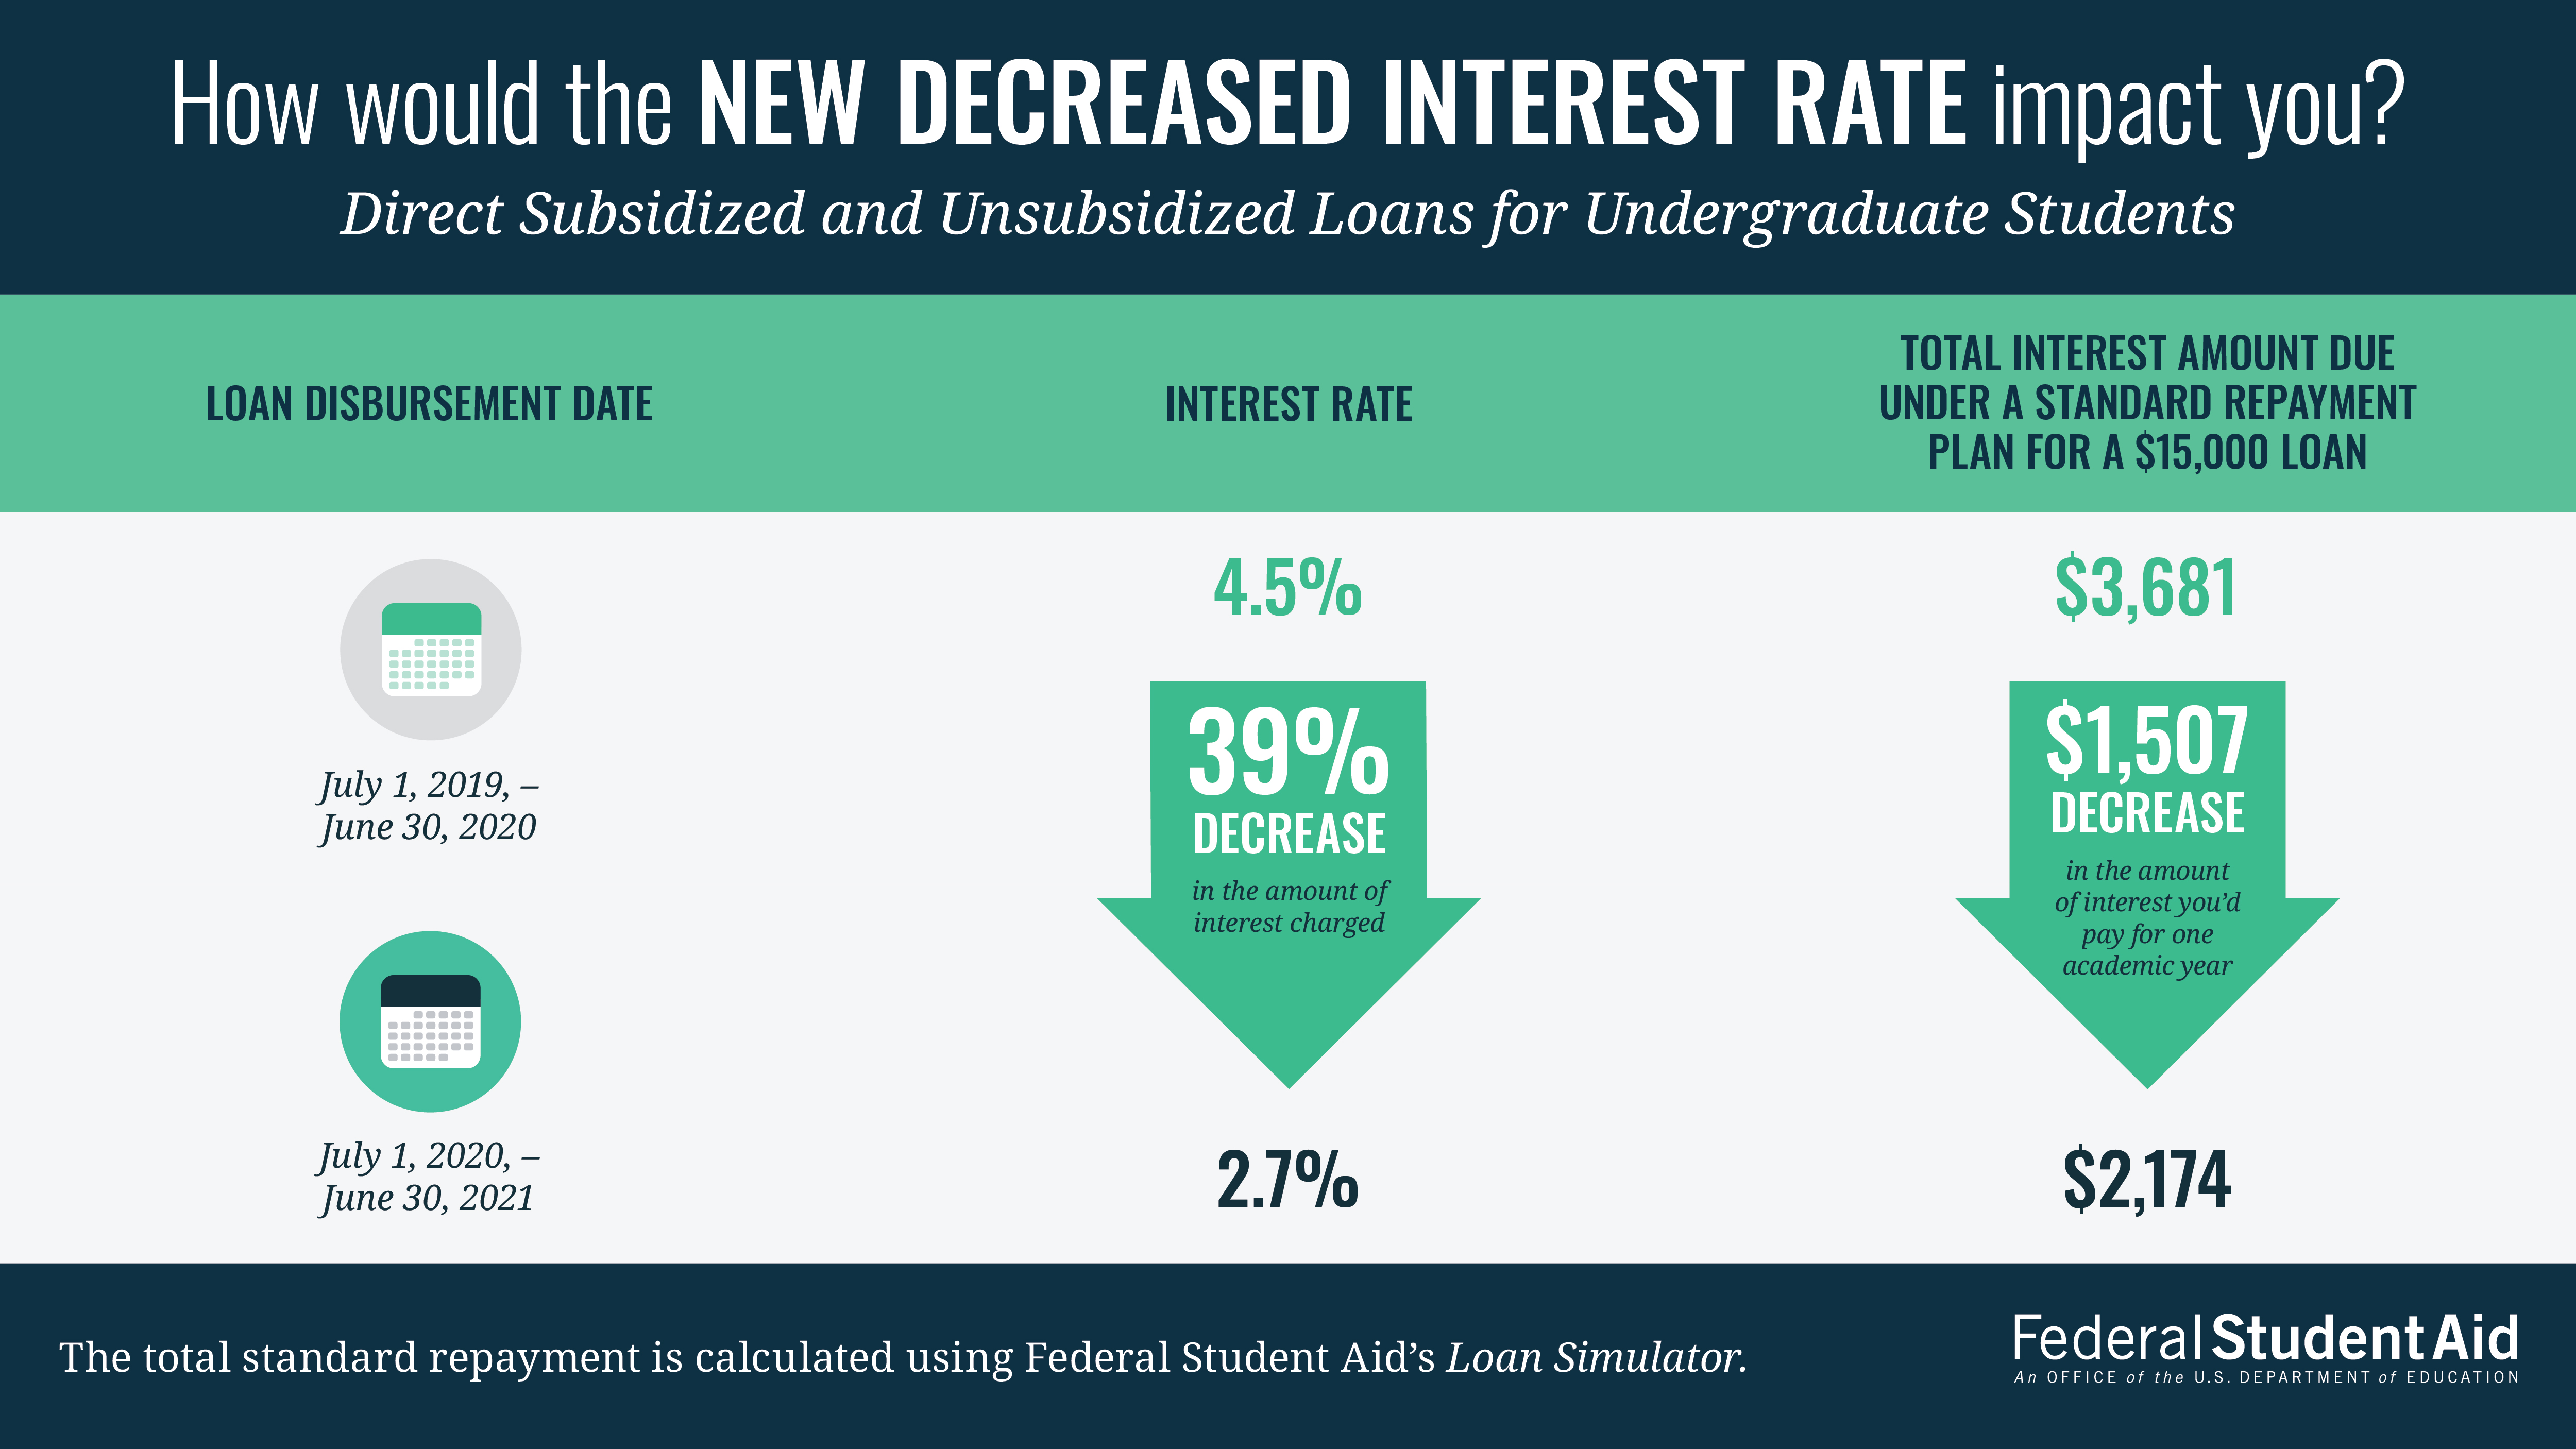 "The image has a title which reads ""How would the new decreased interest rate impact you?"" The image then compares Direct Subsidized and Unsubsidized Loans for Undergraduate Students  by their loan disbursement date.  Loan disbursed on July 1, 2019, -June 30, 2020 had a 4.5% interest rate and the total interest amount due under a standard repayment plan for a $15,000 loan would be $3,681. Loan disbursed on July 1, 2020, -June 30, 2021 have a 2.7% interest rate and the total interest amount due under a standard repayment plan for a $15,000 loan would be $2,174. The graphic shows a green arrow pointing downward to show the 39% decrease in the amount of interest charged and $1,507 decrease in the amount of interest you'd pay for one academic year when comparing loans disbursed July 1, 2019, -June 30, 2020 to loans disbursed from July 1, 2020, -June 30, 2021. At the bottom of the image there is a note which explains that the total standard repayment is calculated using Federal Student Aid's Loan Simulator."